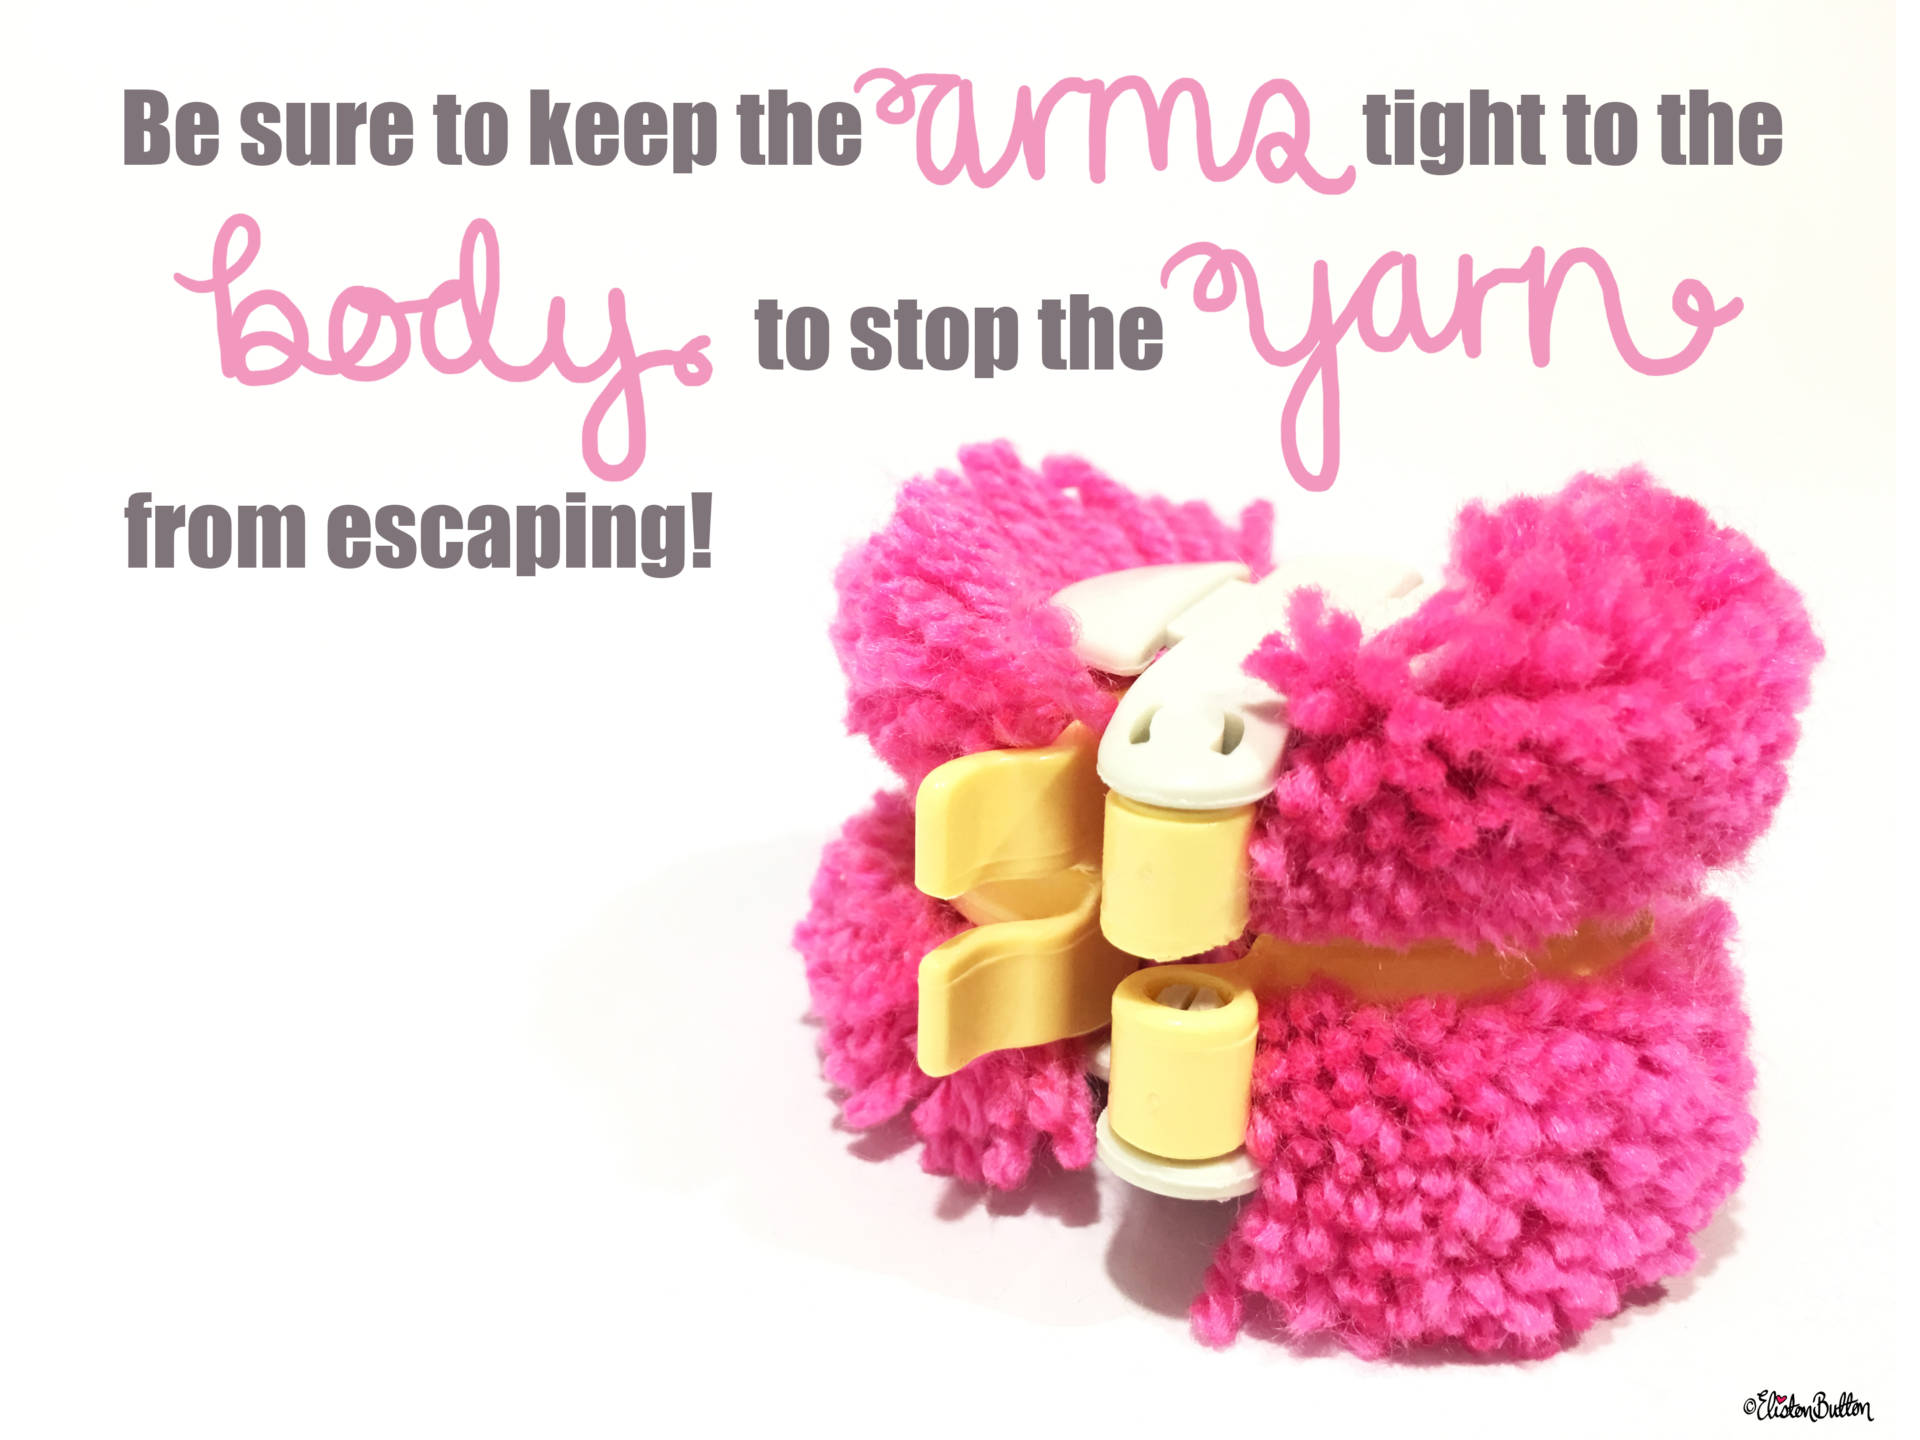 8a. Be Sure to Keep the Arms Tight Closed to the Body to Stop the Yarn Escaping! - Tutorial Tuesday - Clover Pom Pom Maker at www.elistonbutton.com - Eliston Button - That Crafty Kid – Art, Design, Craft & Adventure.